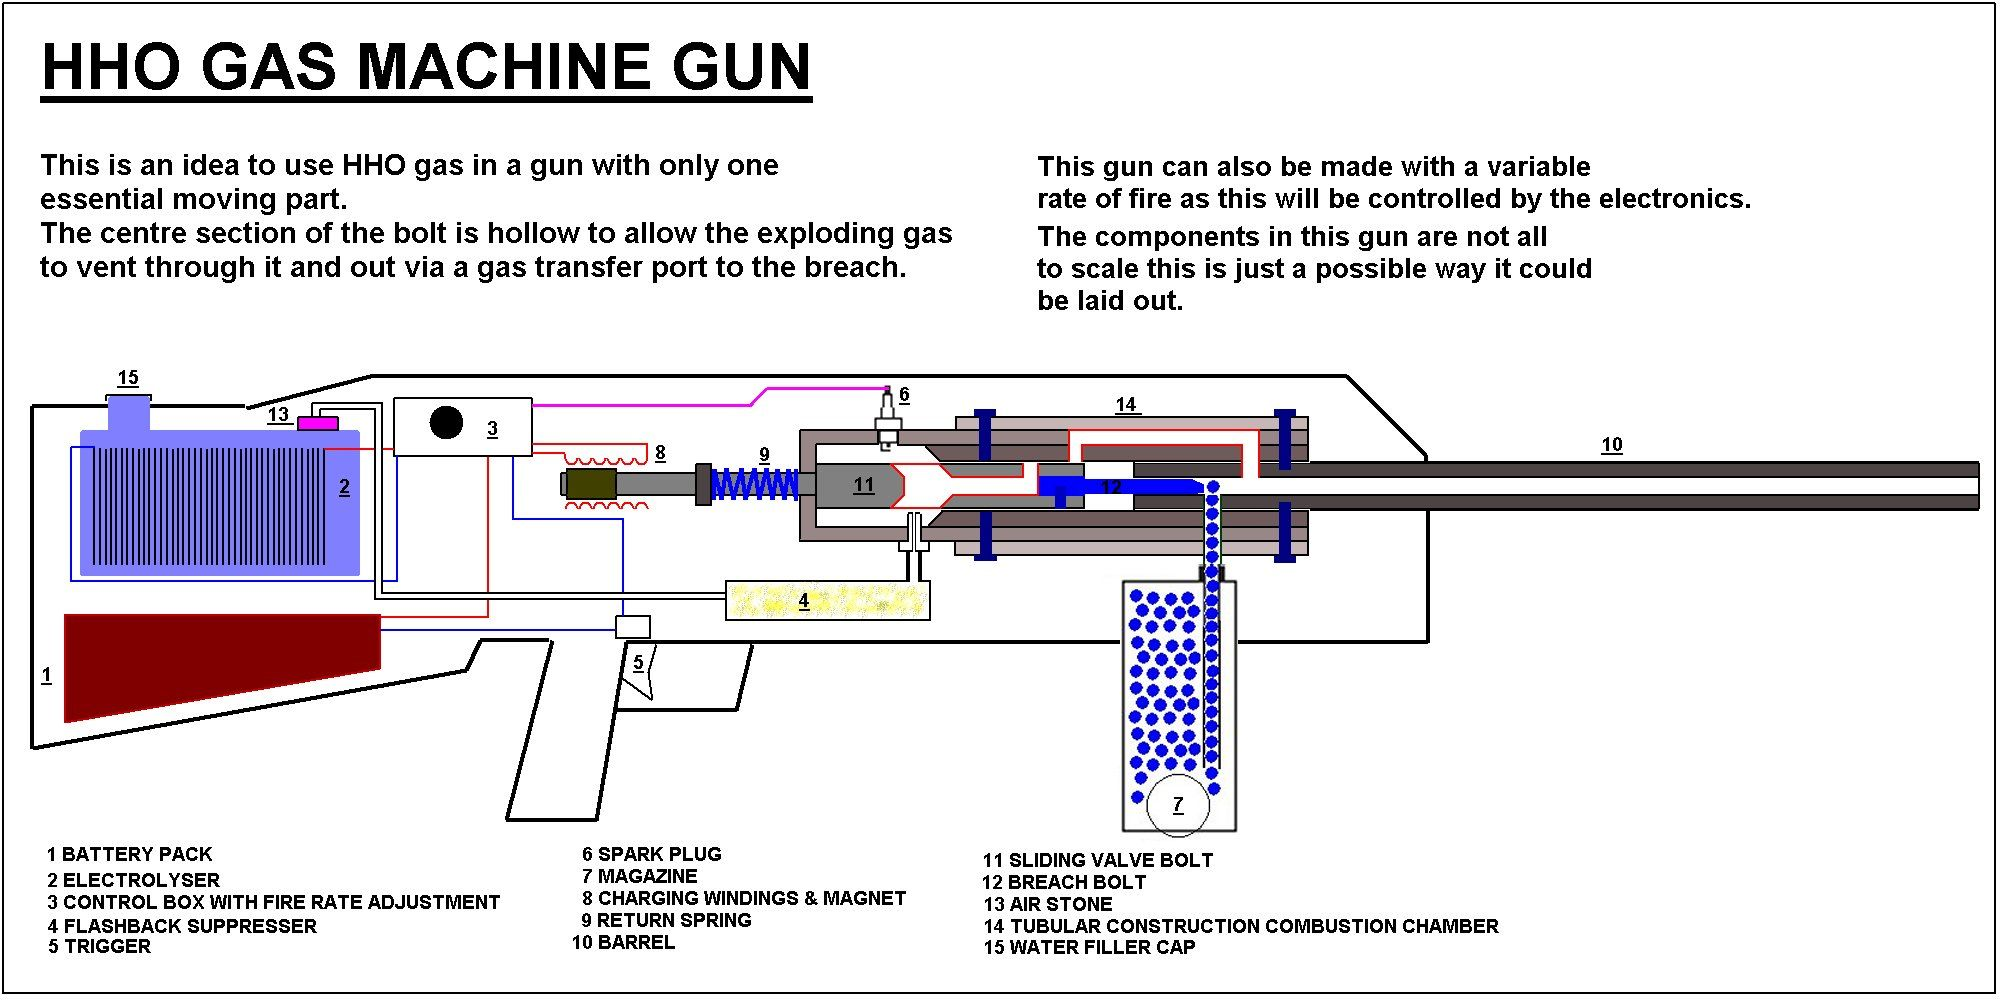 medium resolution of an idea i had many years ago to make a hho machine gun based partly on a two stroke engine design